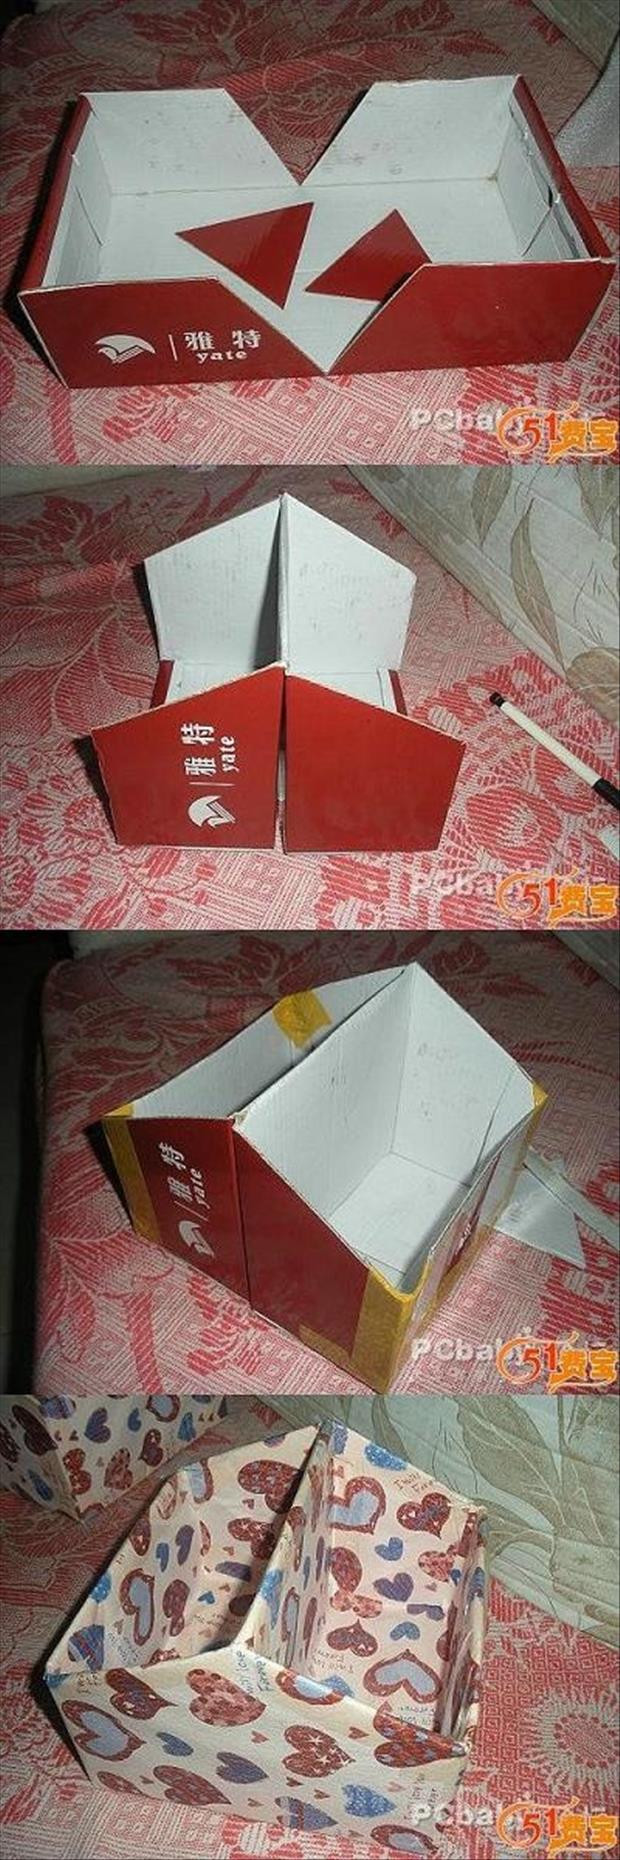 Best ideas about Shoes Box DIY . Save or Pin Shoebox Now.